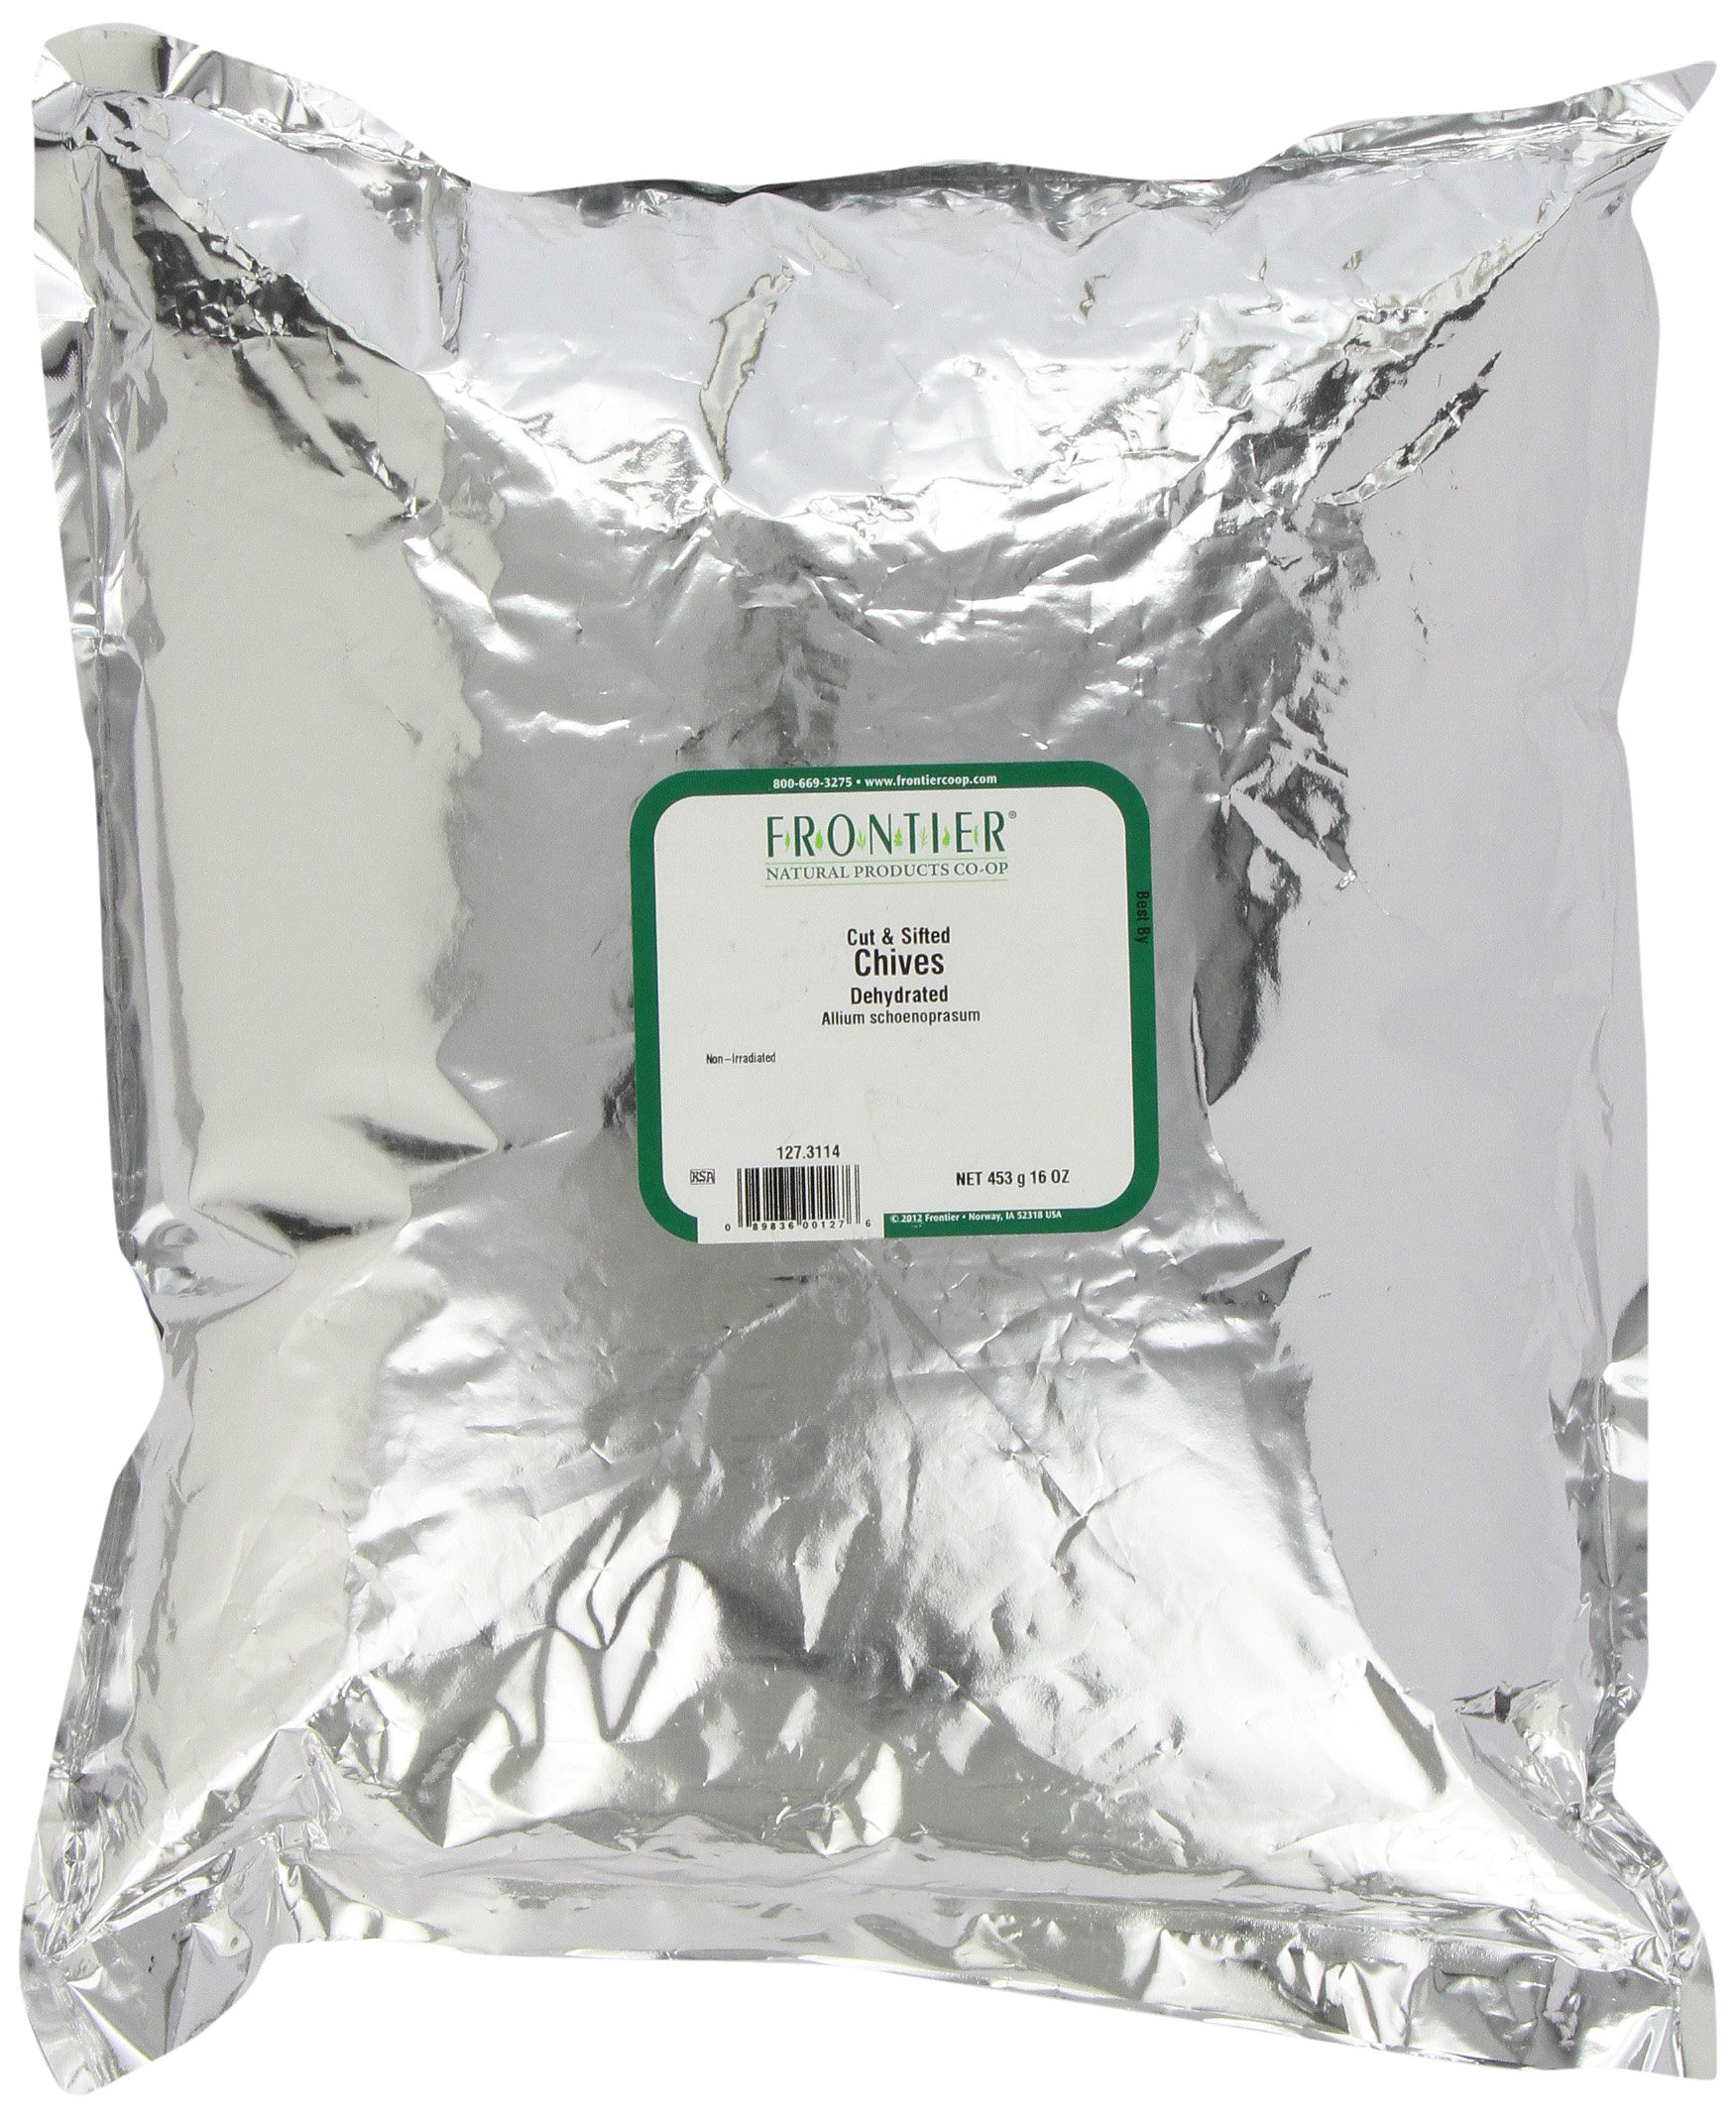 Frontier Chives, Dehydrated, C/s, 16 Ounce Bag by Frontier (Image #1)